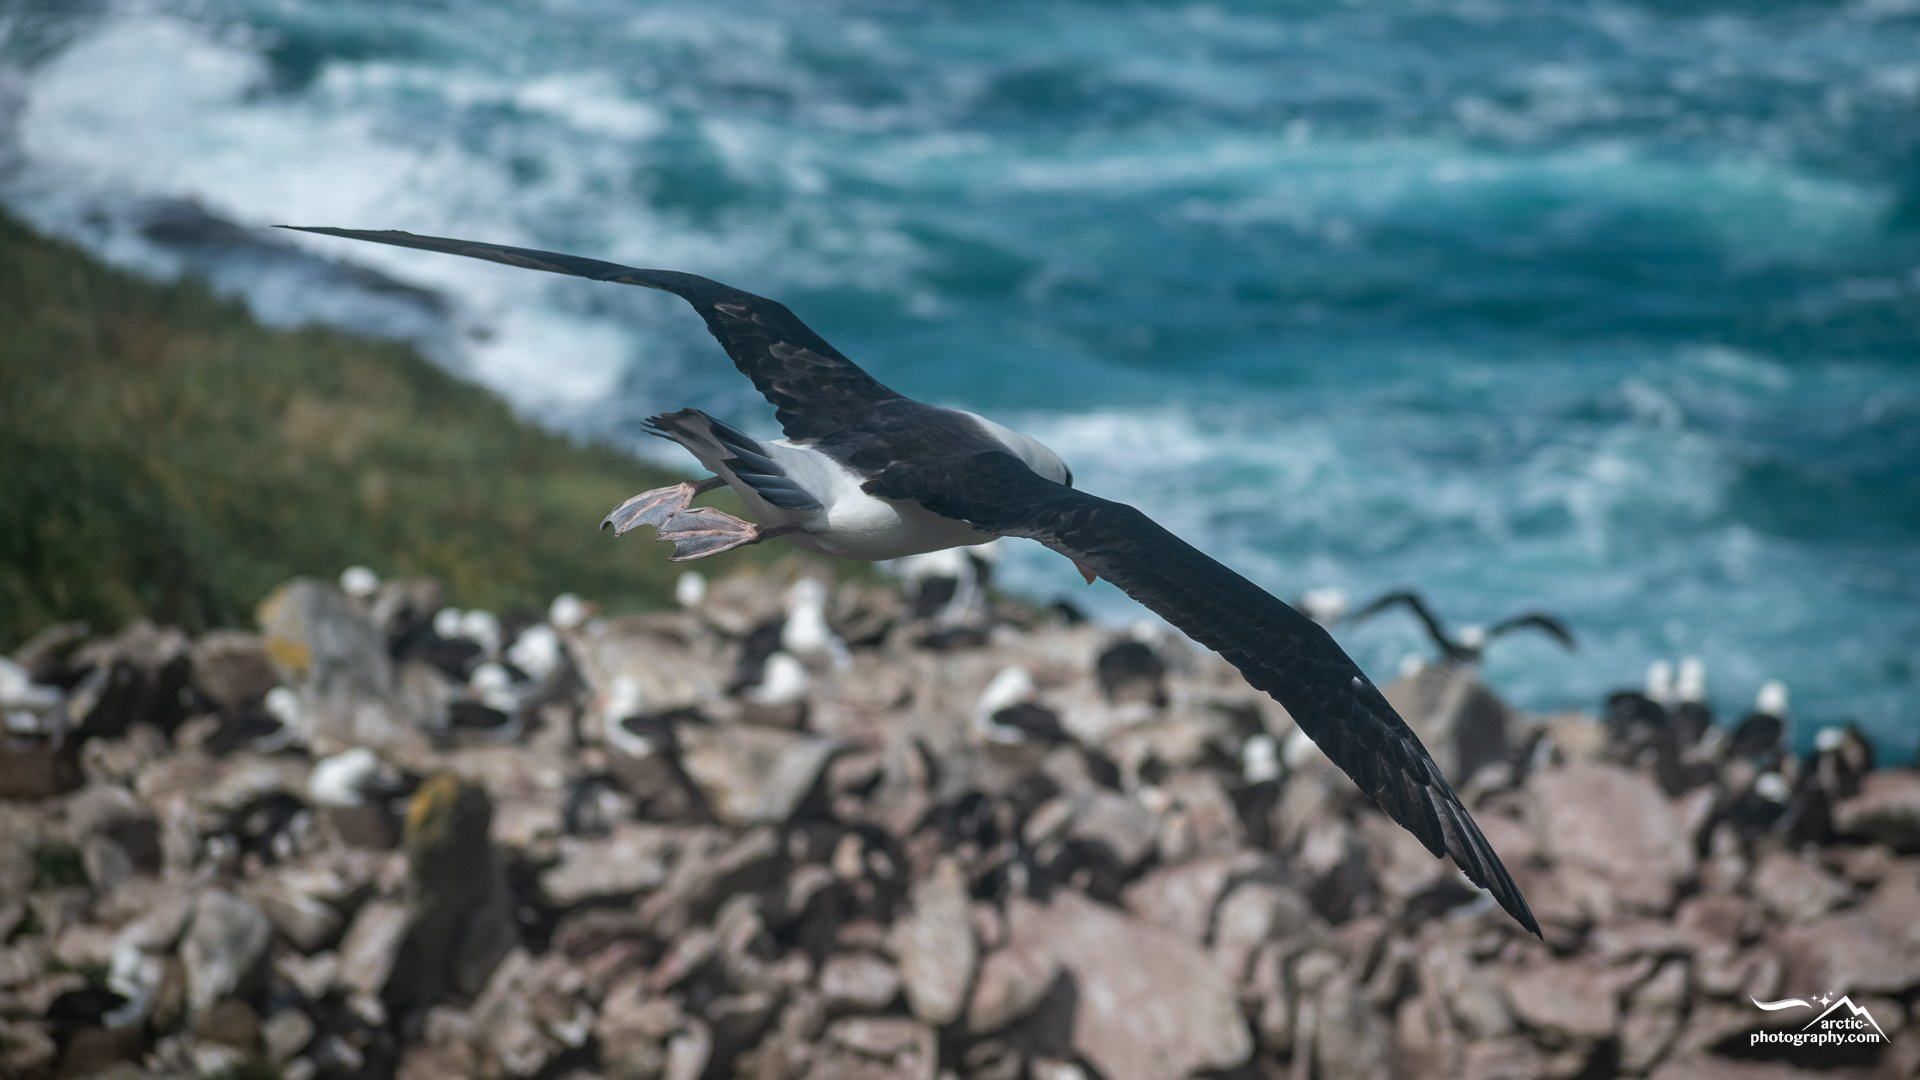 Albatross in the air, Westpoint Island I Falkland Islands